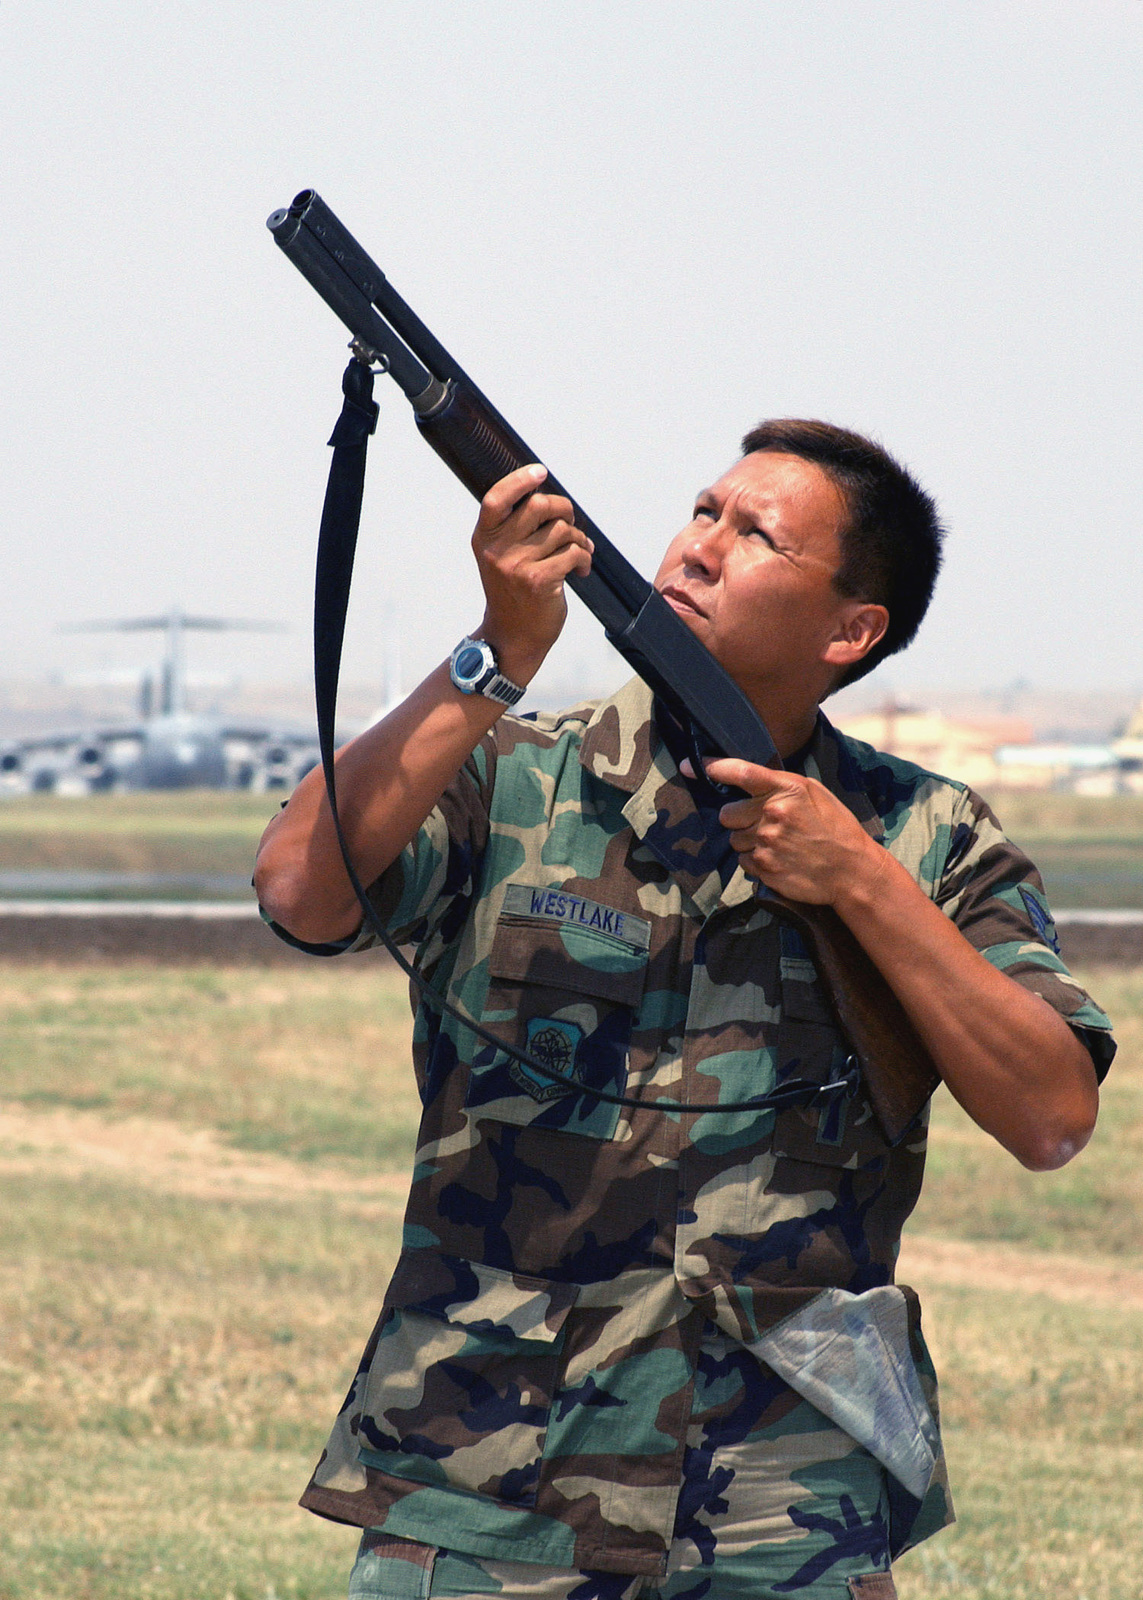 US Air Force Reserve (USAFR) STAFF Sergeant (SSGT) Jerry Westlake, 39th Operations Support Squadron (OSS) use a Remington 870 12-gague shotgun loaded with pyrotechnical shells (blanks) as a last resort to scare off unwanted birds in flight, while conducting the Bird and Strike Hazard (BASH) program at Incirlik Air Base (AB), Turkey